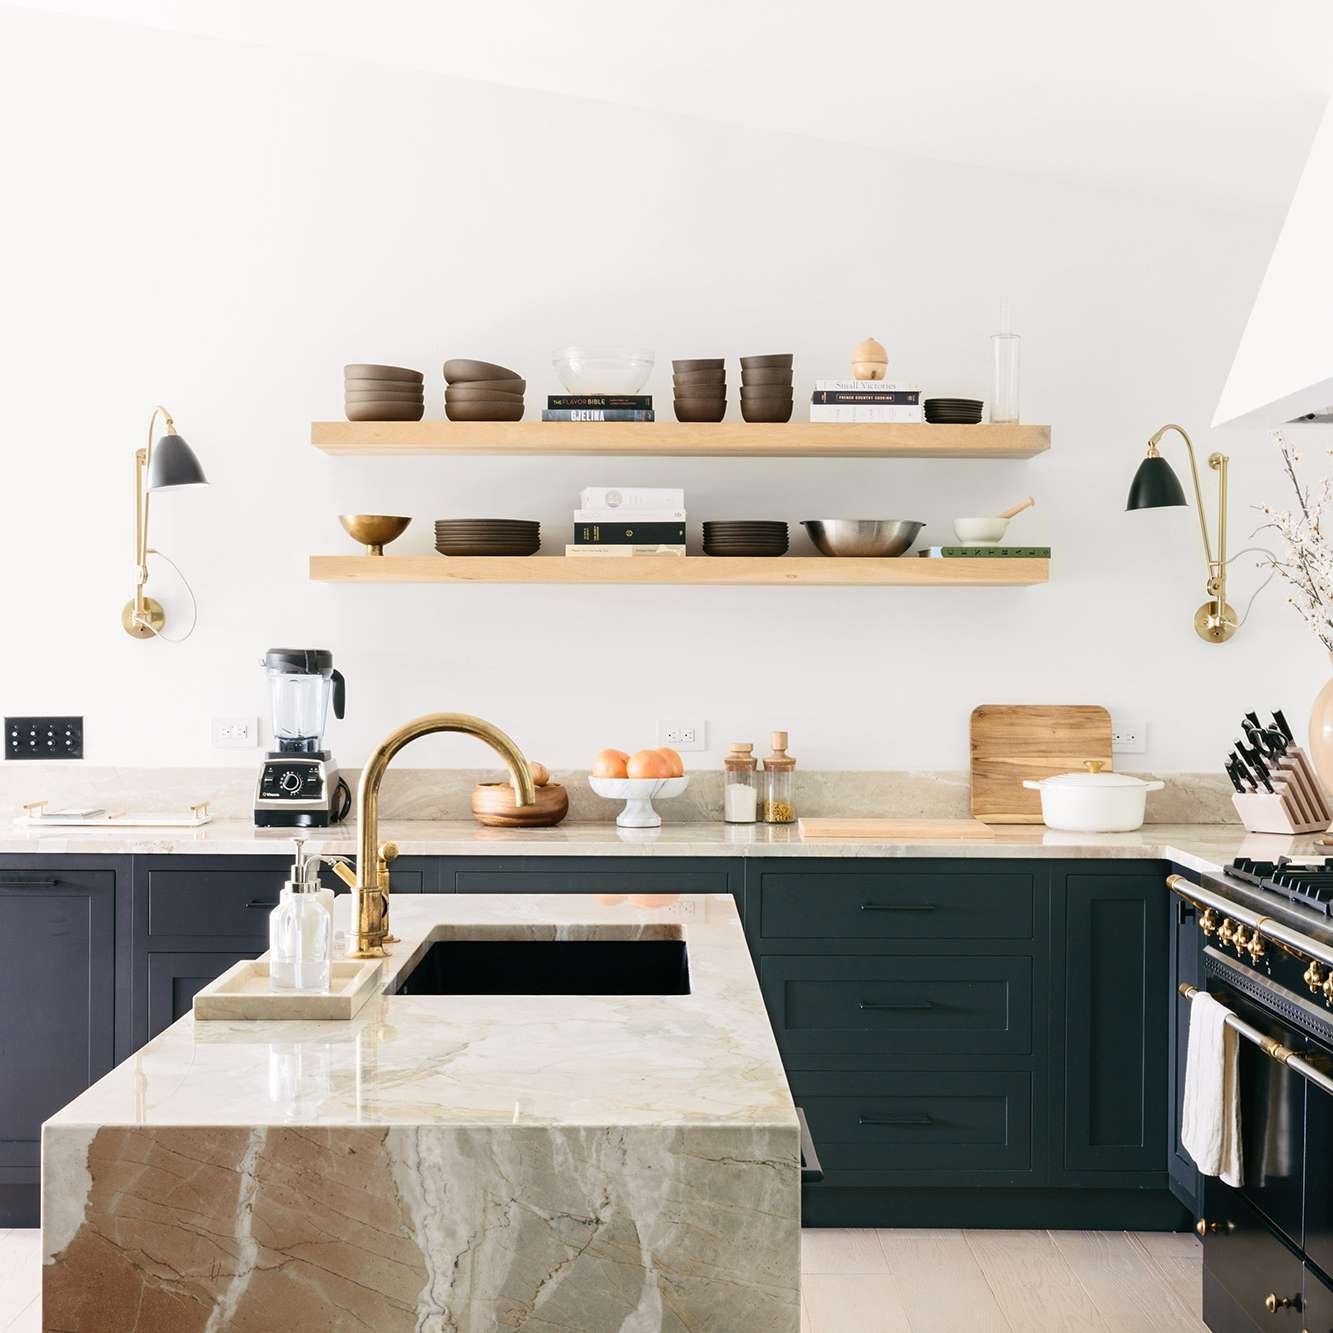 A sleek kitchen with wooden shelves topped with minimalist dinnerware and cookbooks